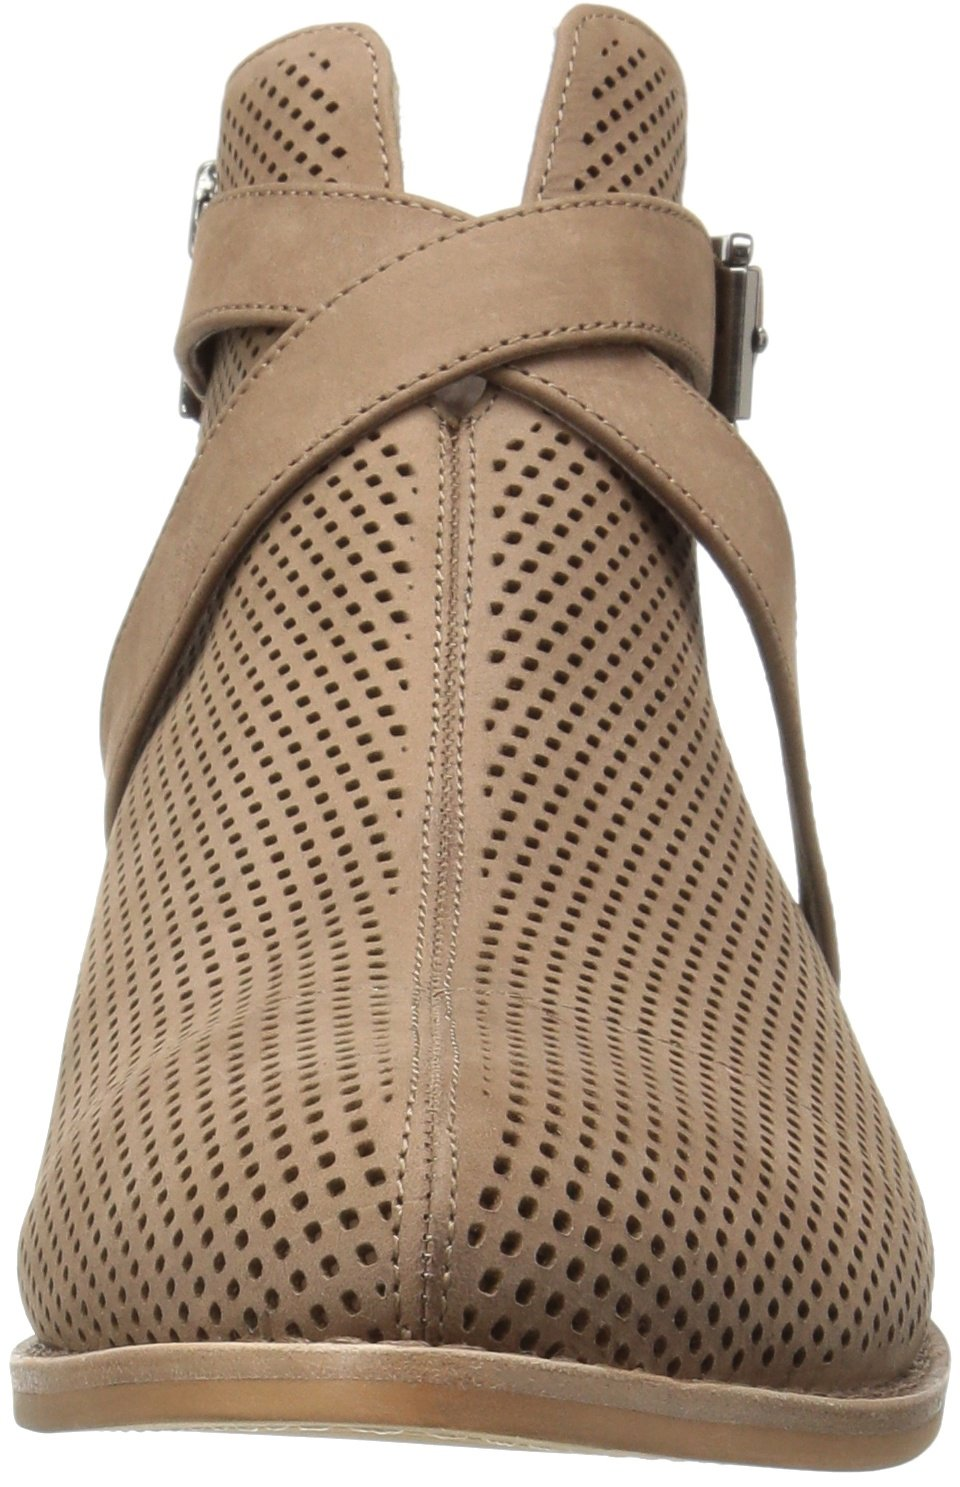 Vince Camuto Women's Casha Ankle Bootie B01G8H0SBY 6.5 B(M) US|Smoke Taupe